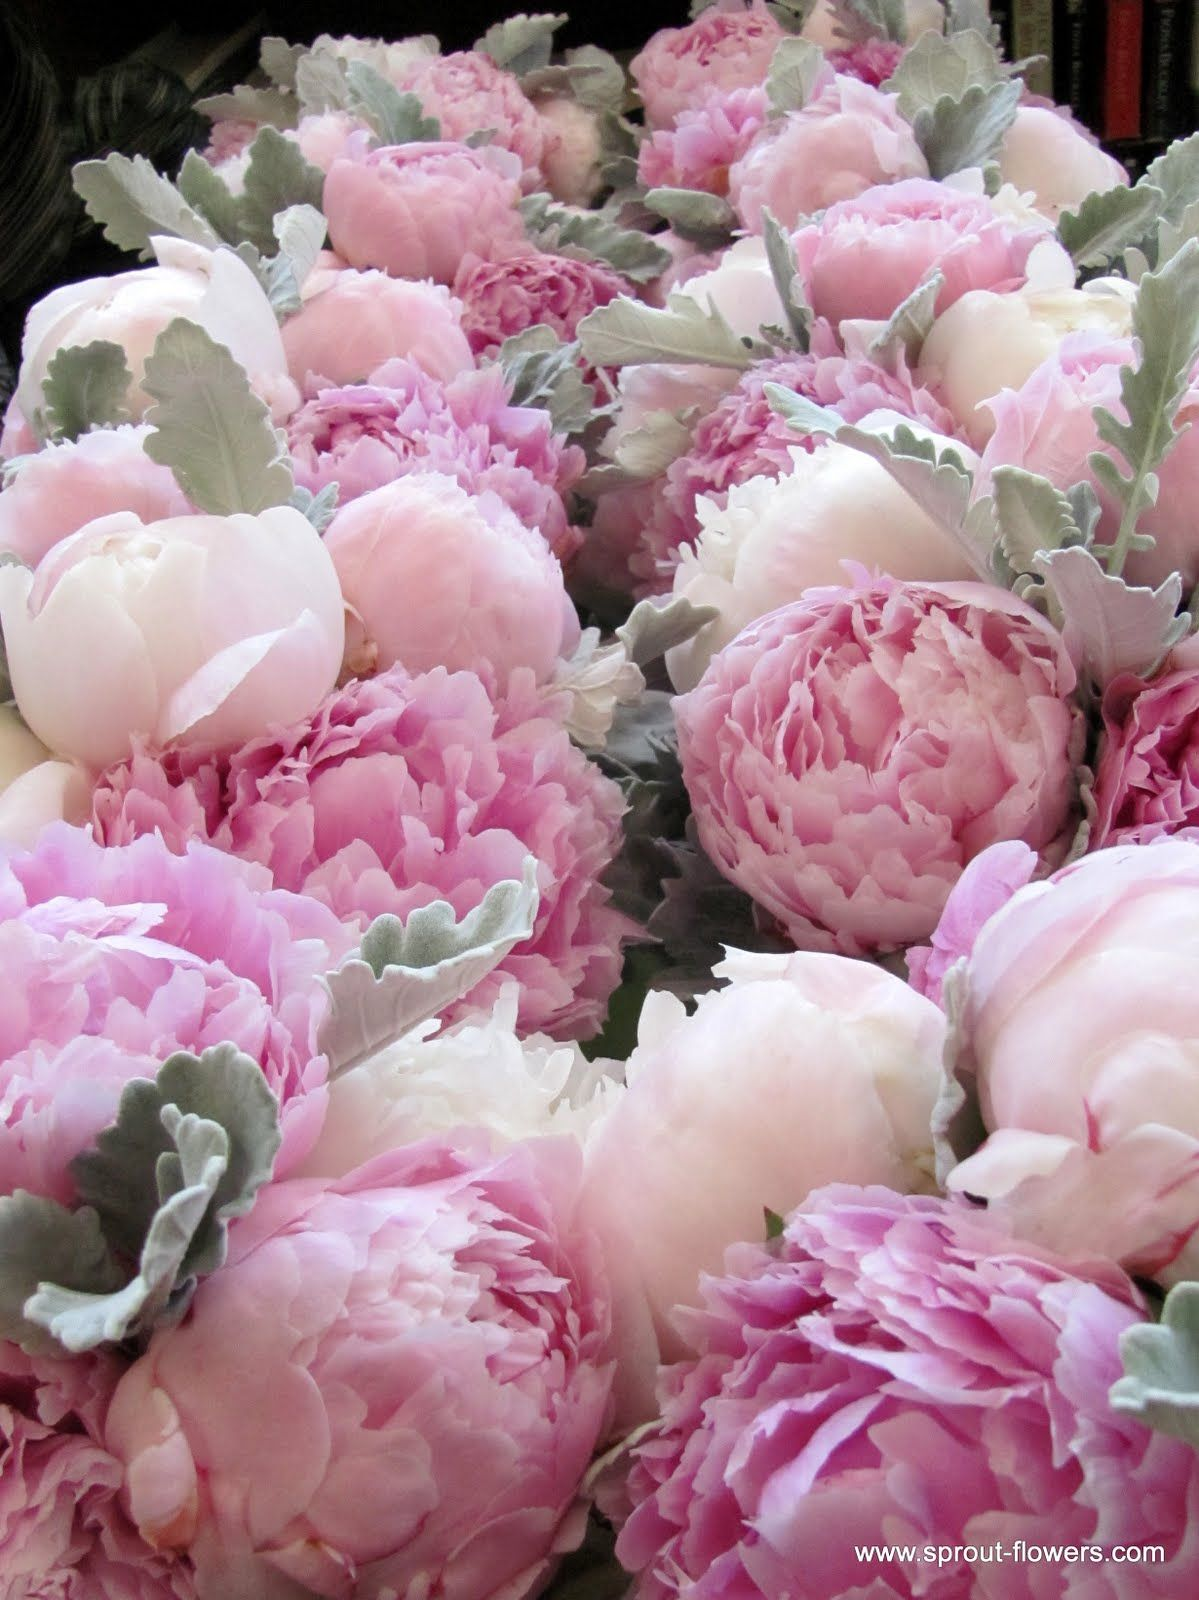 i love peonies! they evoke such an extraordinary sense of calm and